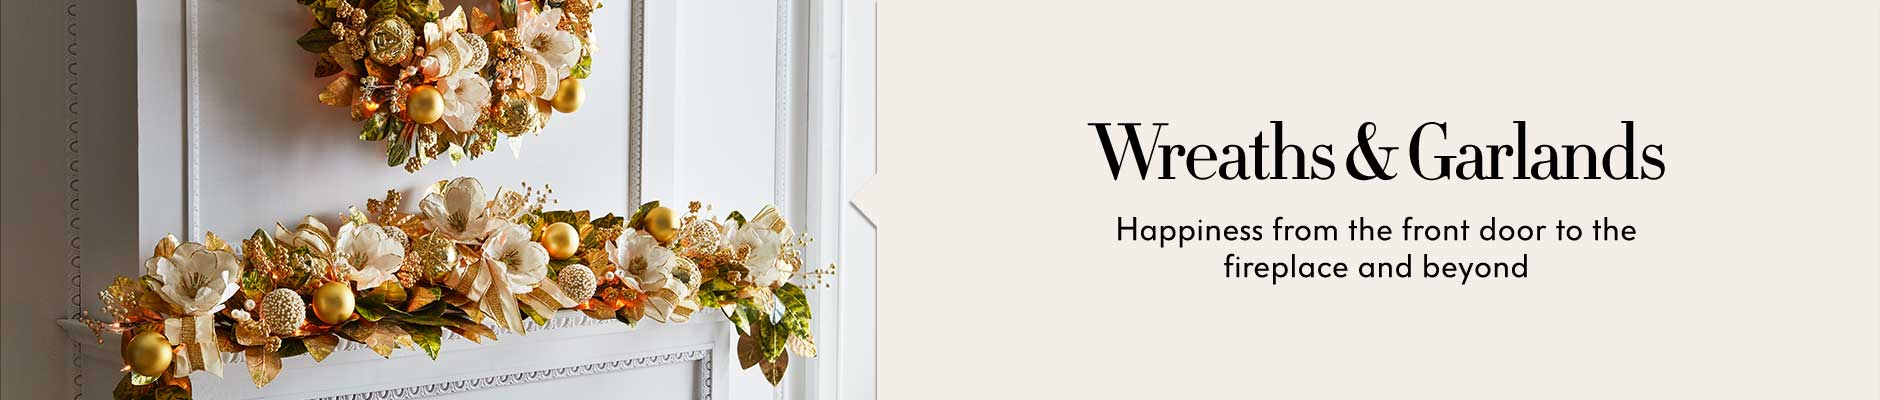 Wreaths & Garlands - Happiness from the front door to the fireplace and beyond